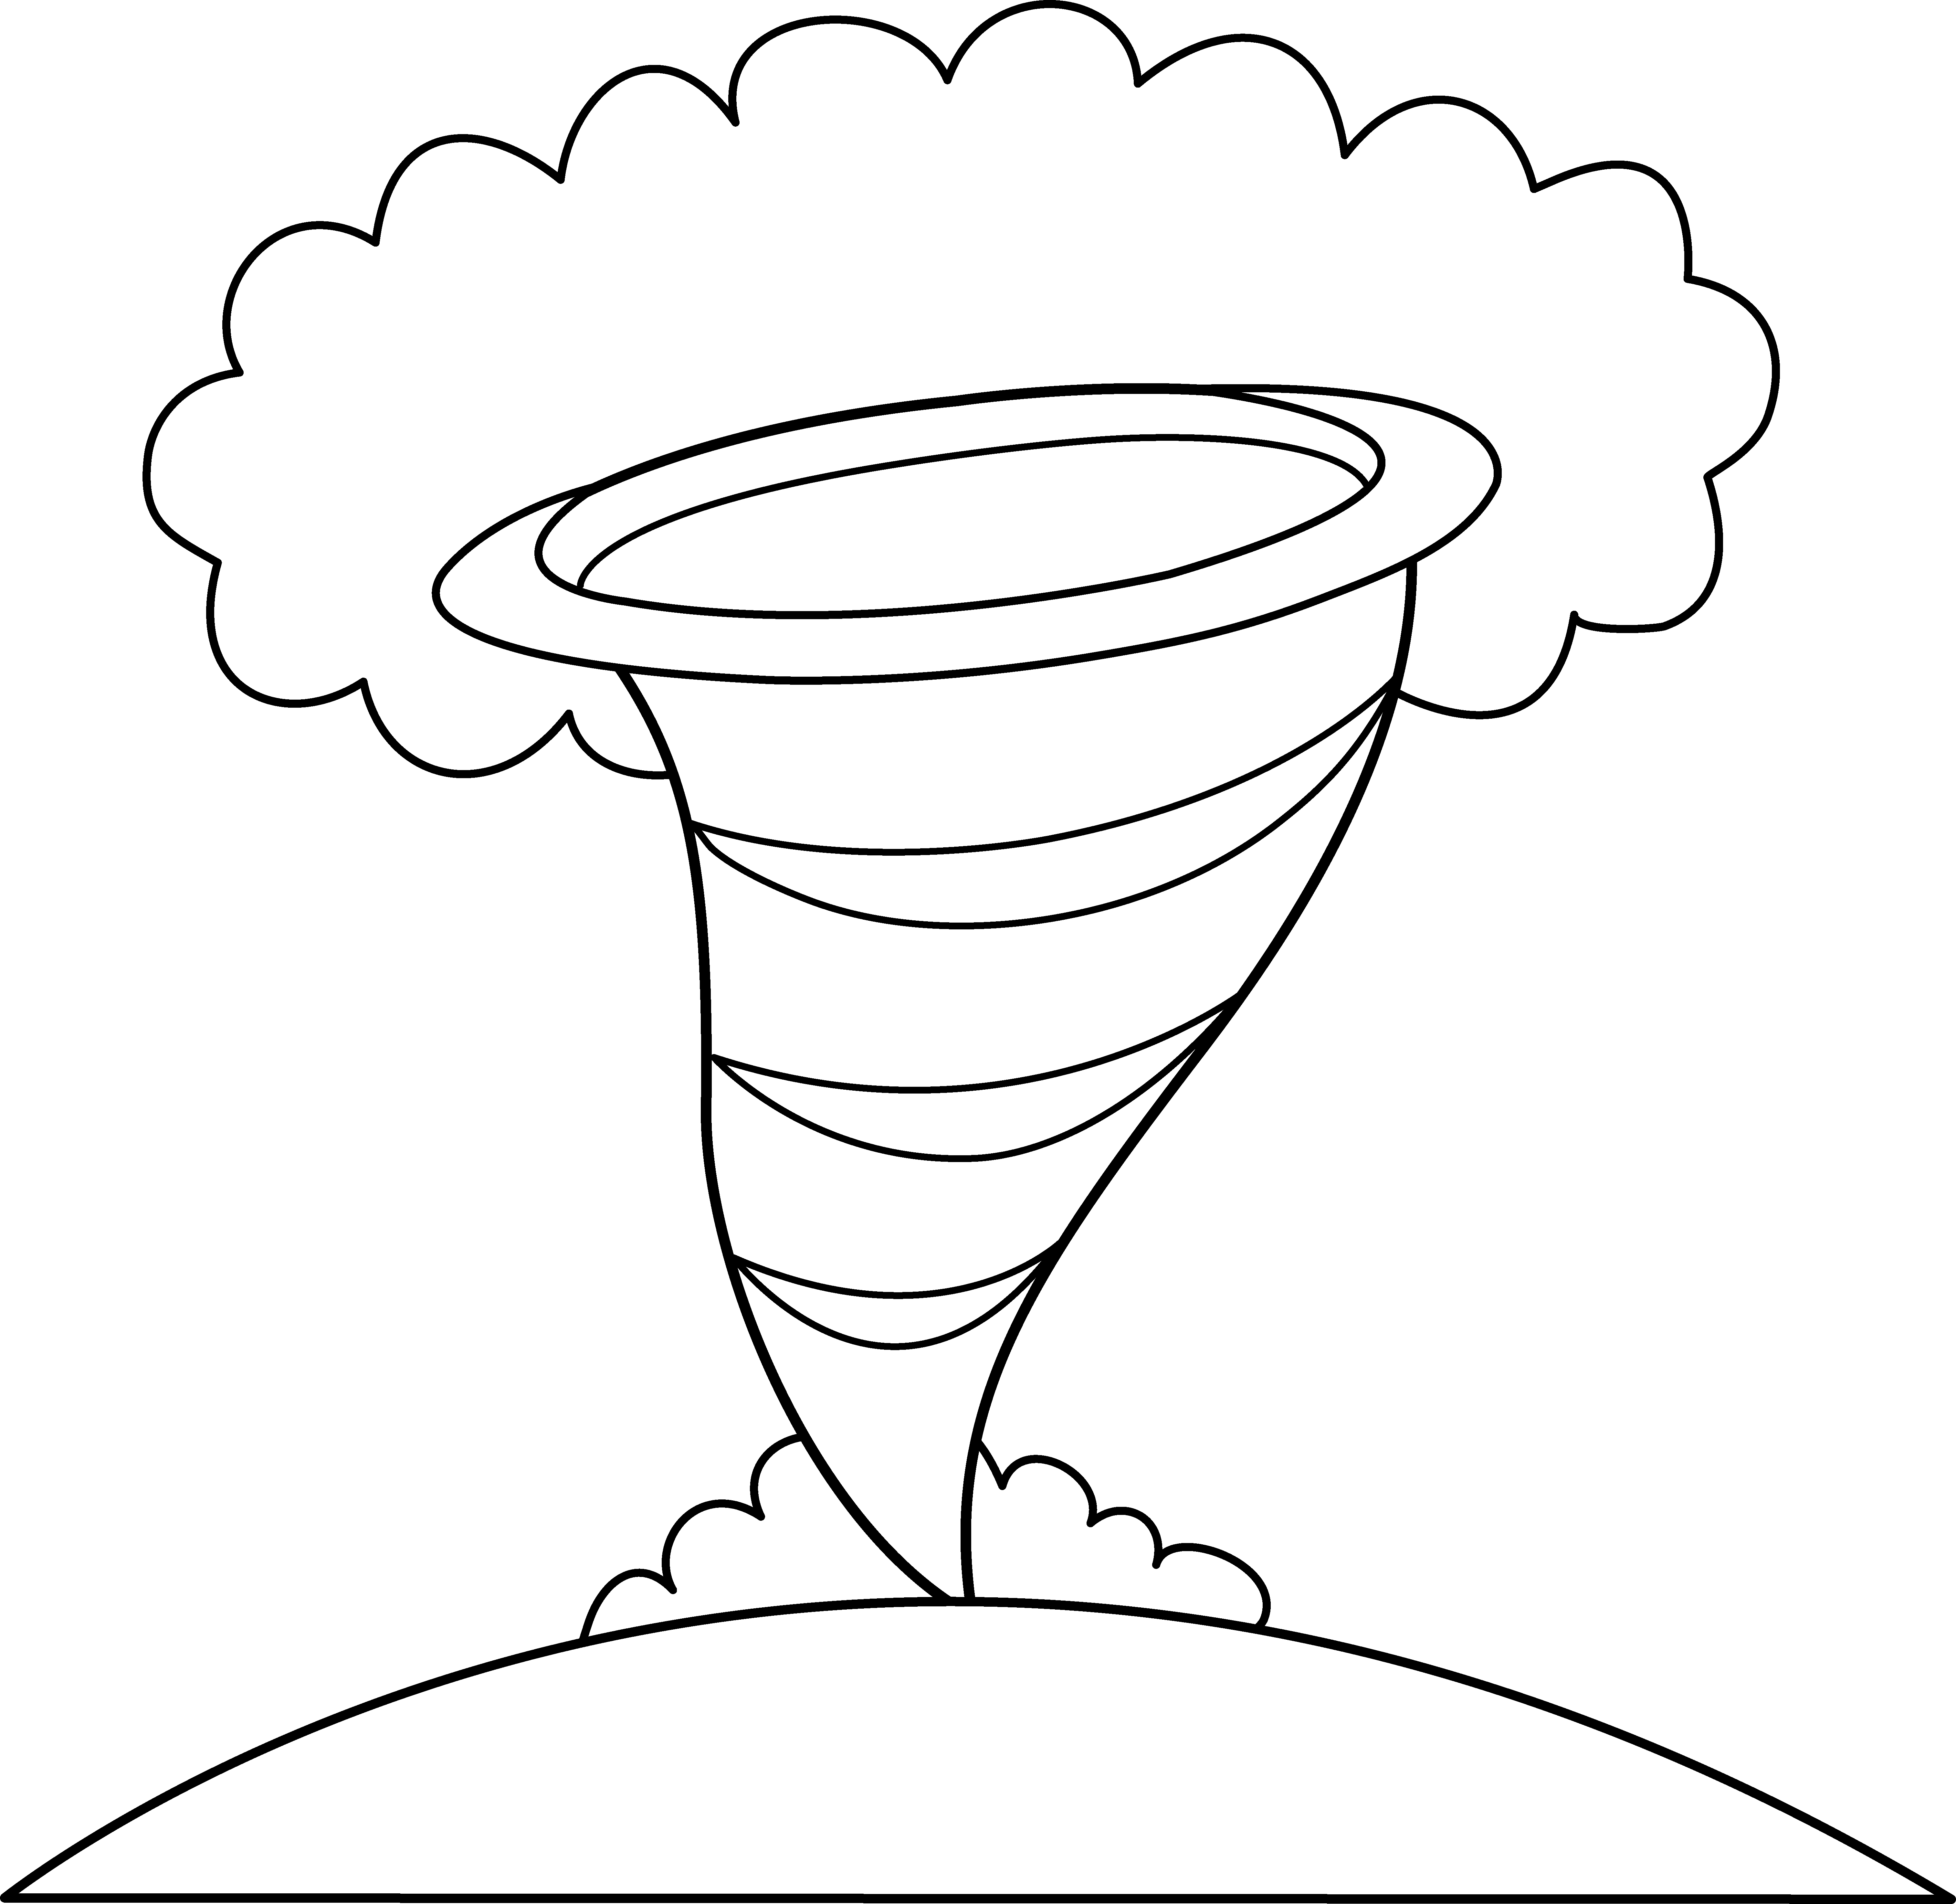 Tornado coloring pages to download